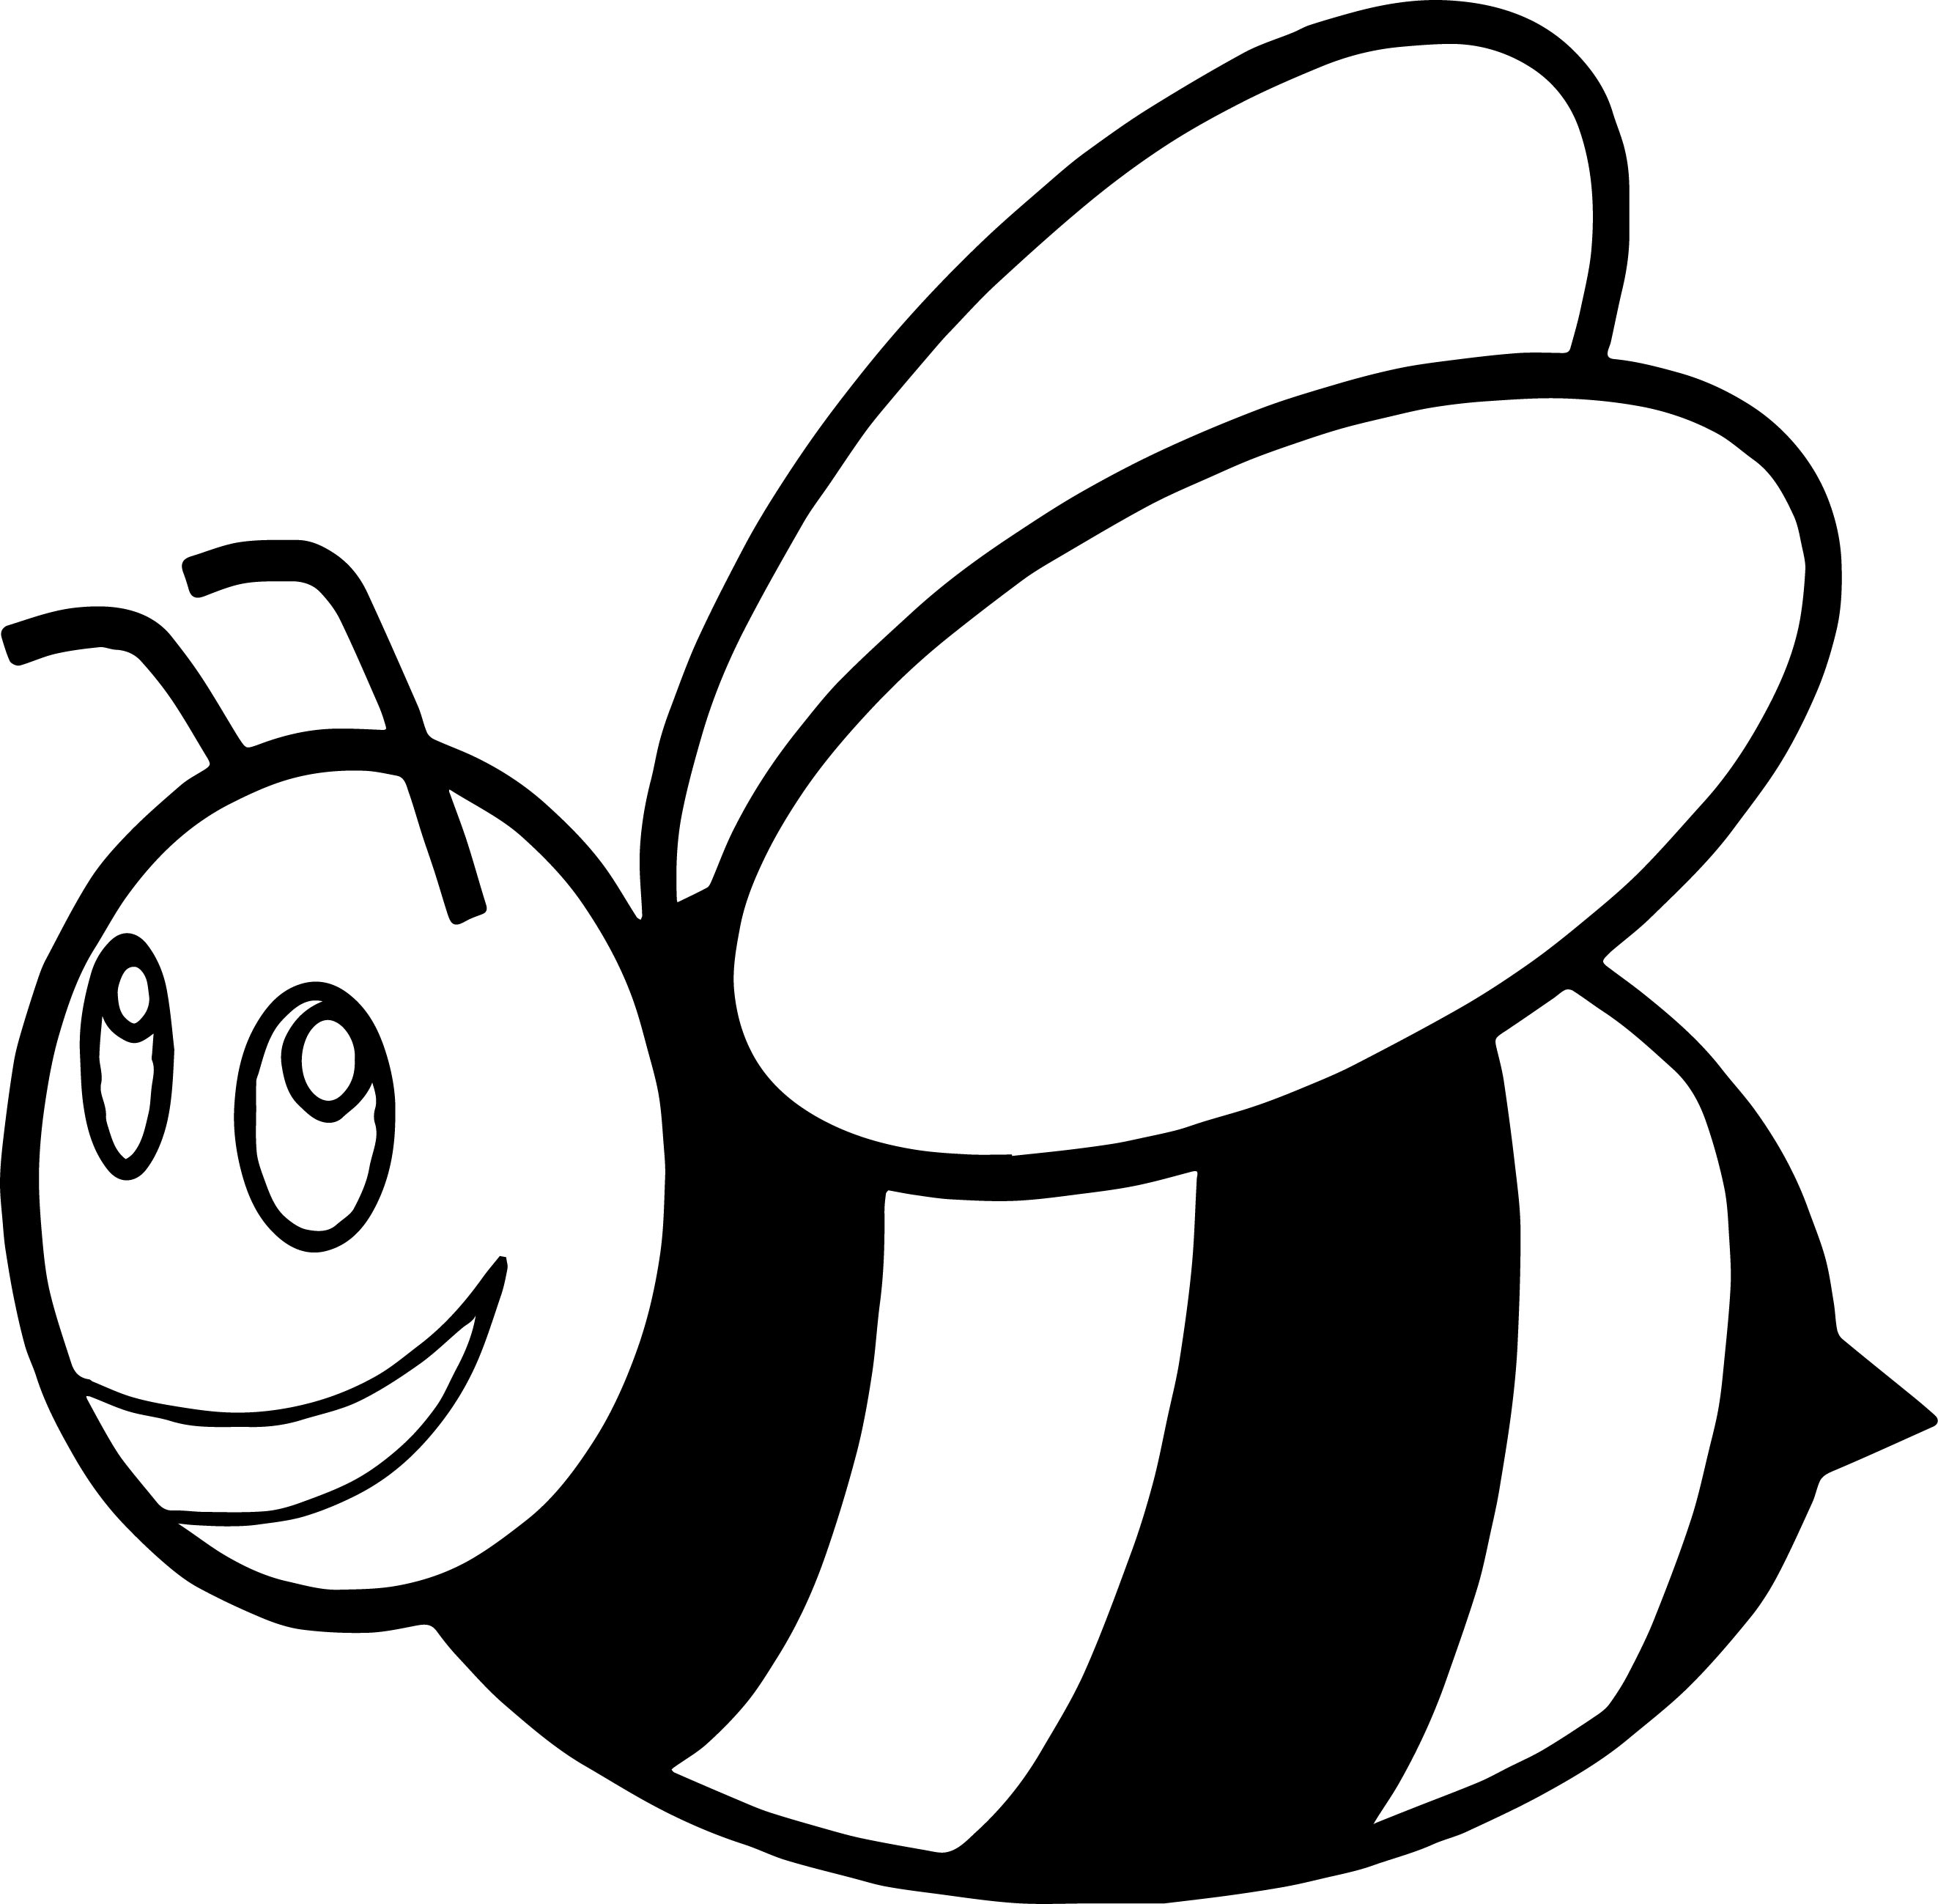 Bees Coloring Pages Cute Cartoon Bumble Bee Rubber Coaster Coloring Page  Wecoloringpage